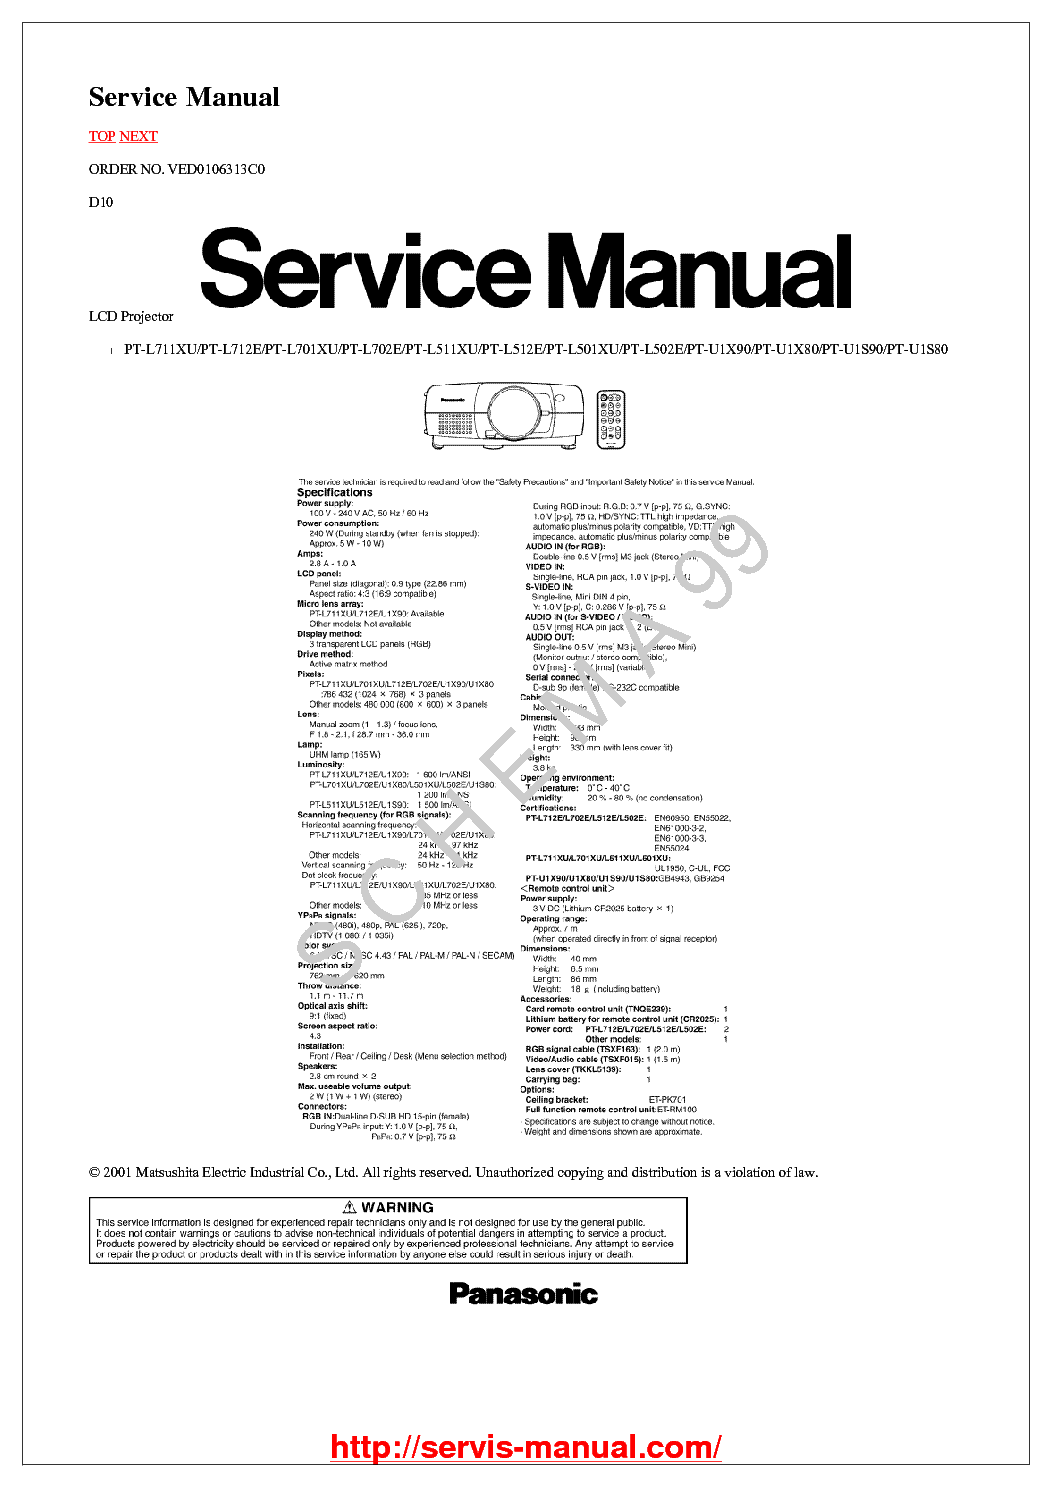 PANASONIC PT-L501-502-511-512-701-711-712 Service Manual